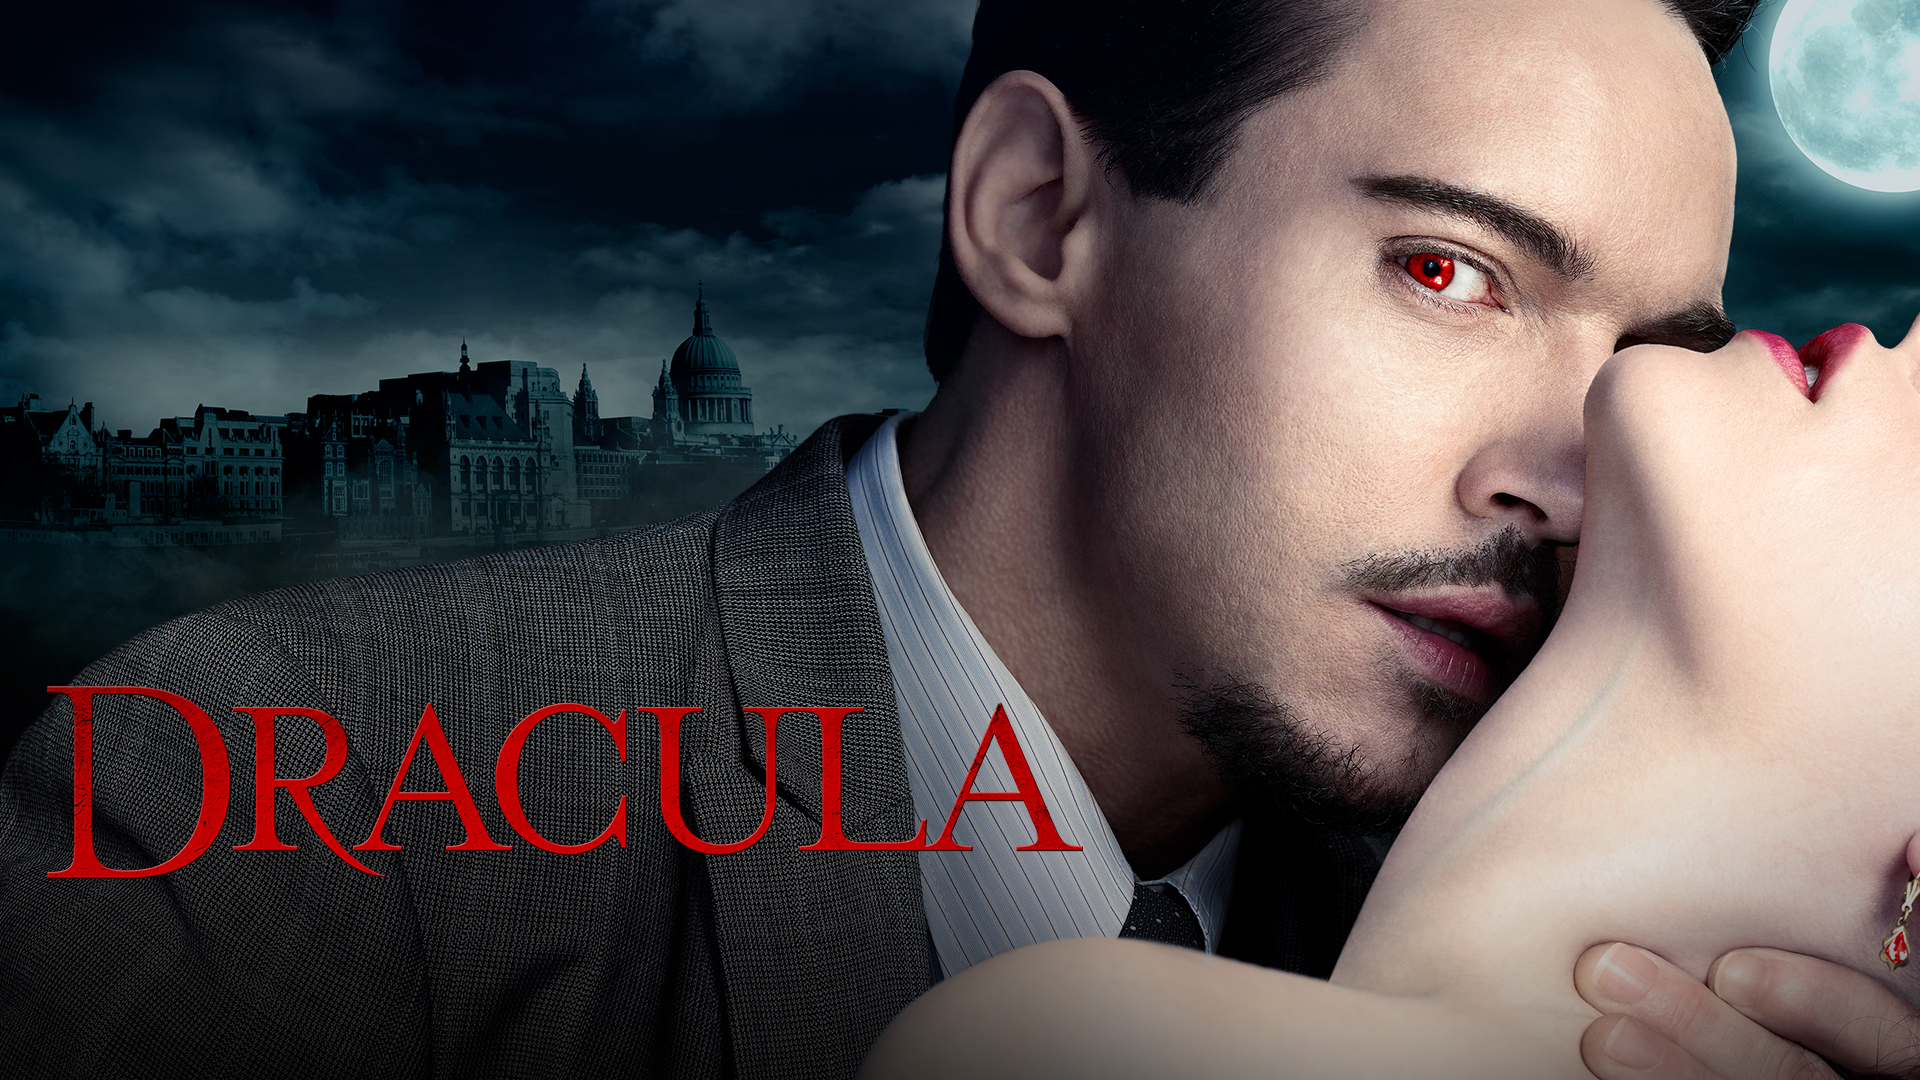 watch dracula episodes nbc com